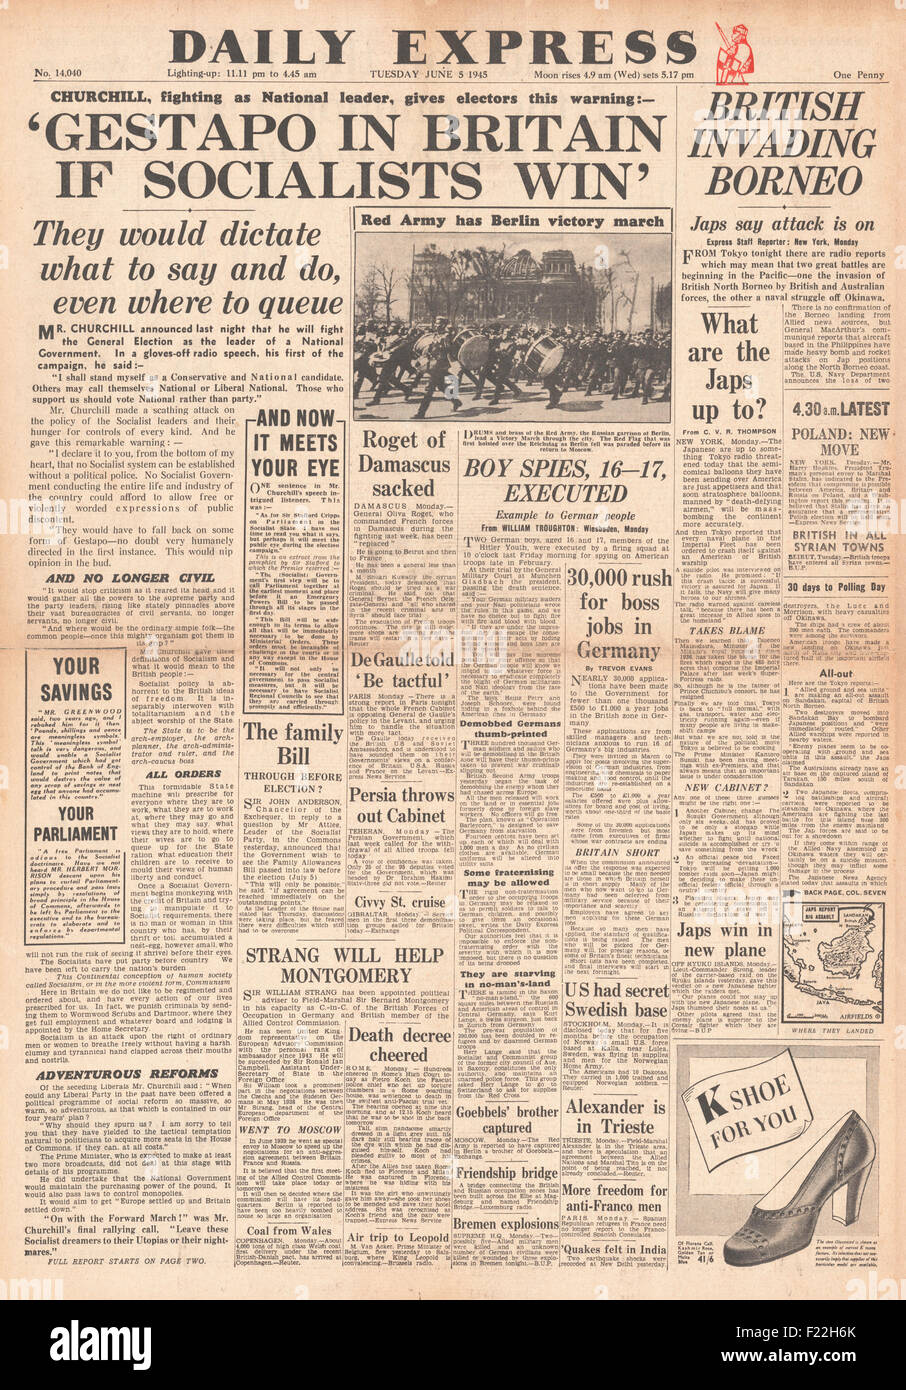 1945 Daily Express front page reporting Churchill Claims 'Gestapo In Britain If Socialists Win' General - Stock Image